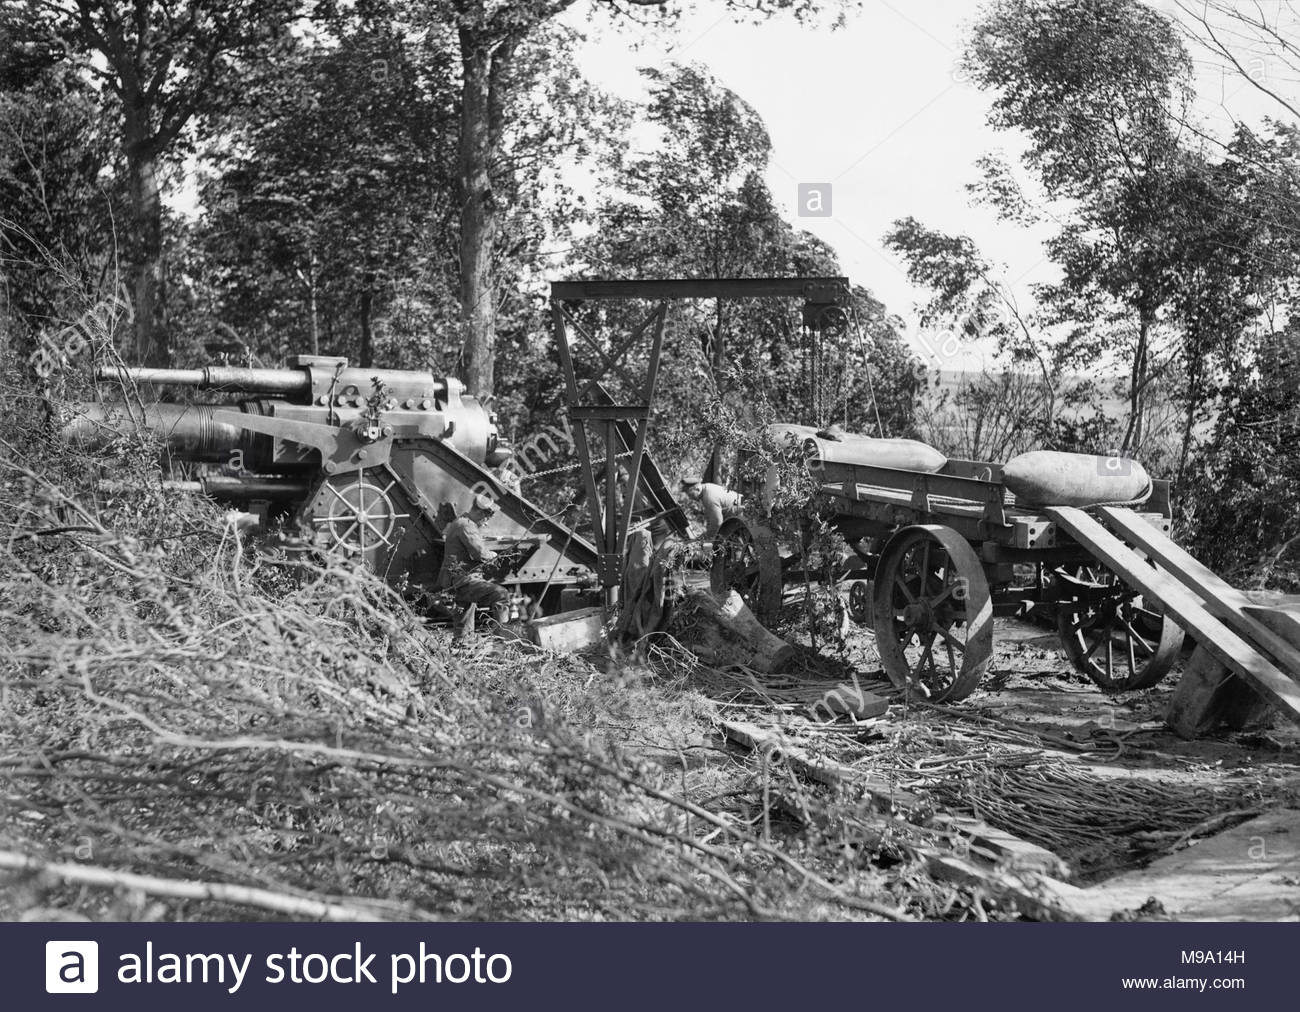 The Battle of the Somme, July - November 1916 The Royal Engineers No.1 Printing Company. A 15 inch howitzer is loaded (the 15 inch howitzers were the heaviest of the British guns but there were only six on the 18 miles of the battlefront). - Stock Image